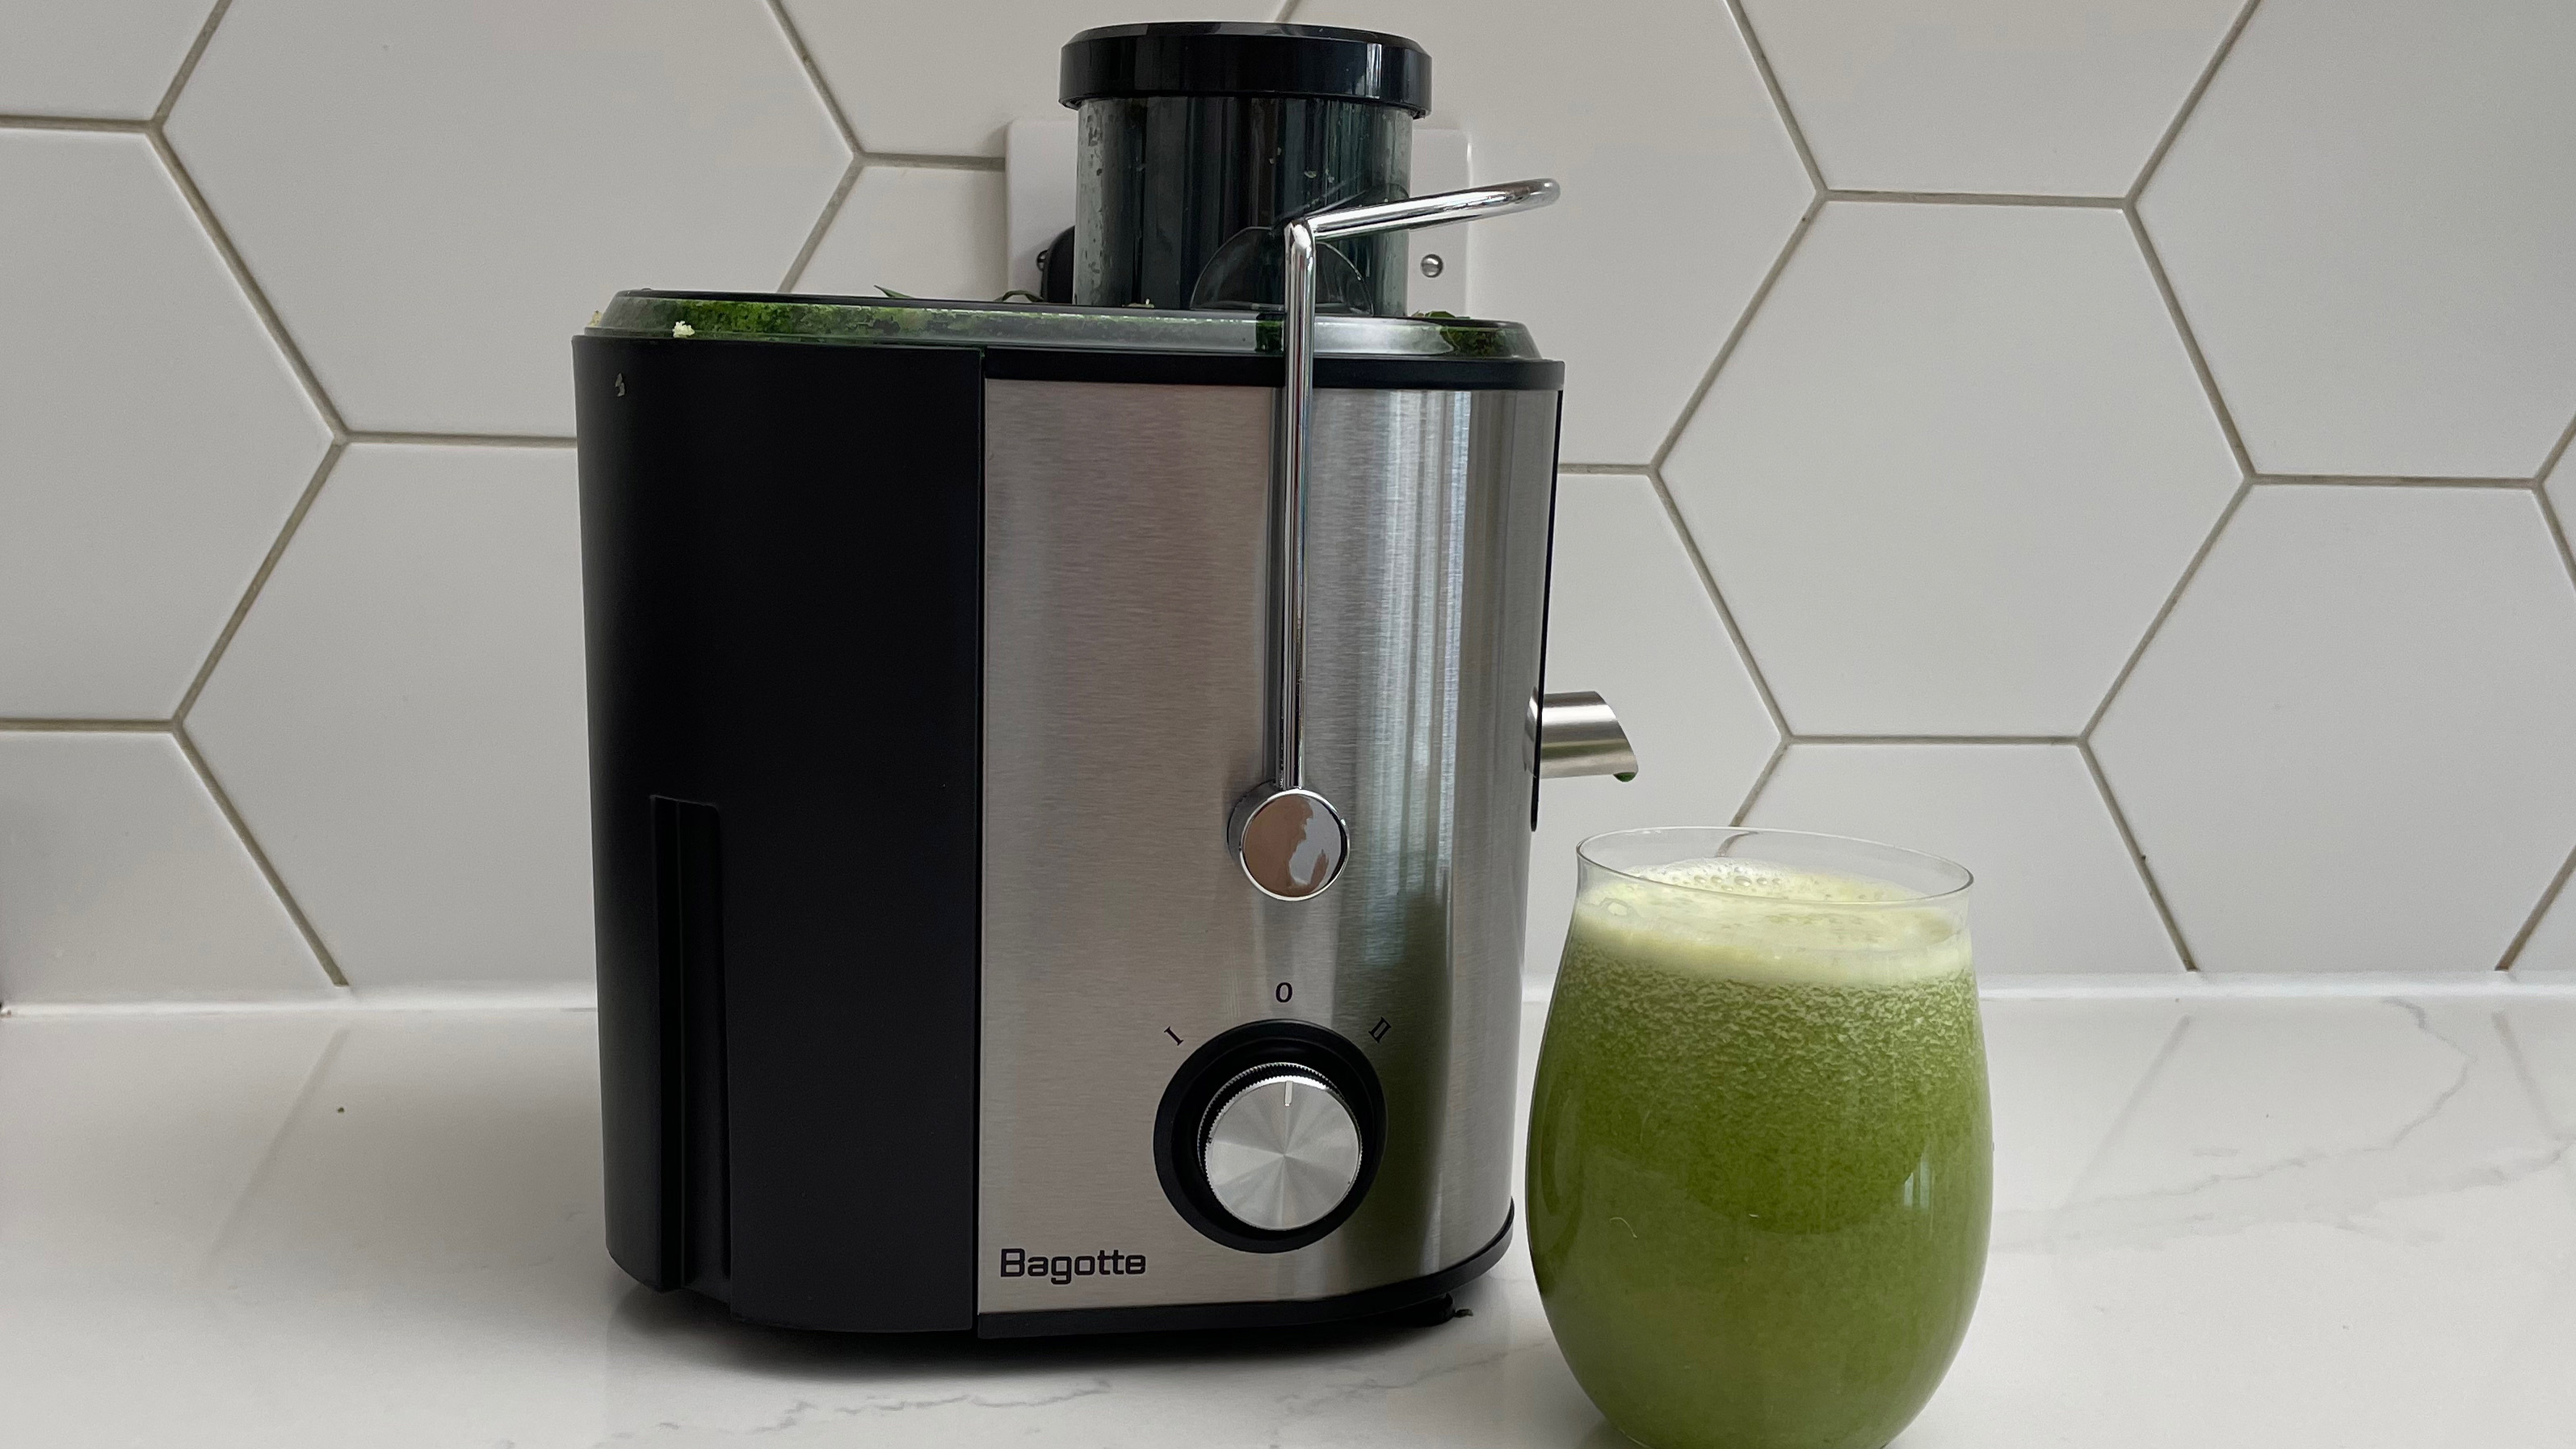 The Bagotte DB-001 juicer nexyt to a glass of green juice prepared in the appliance